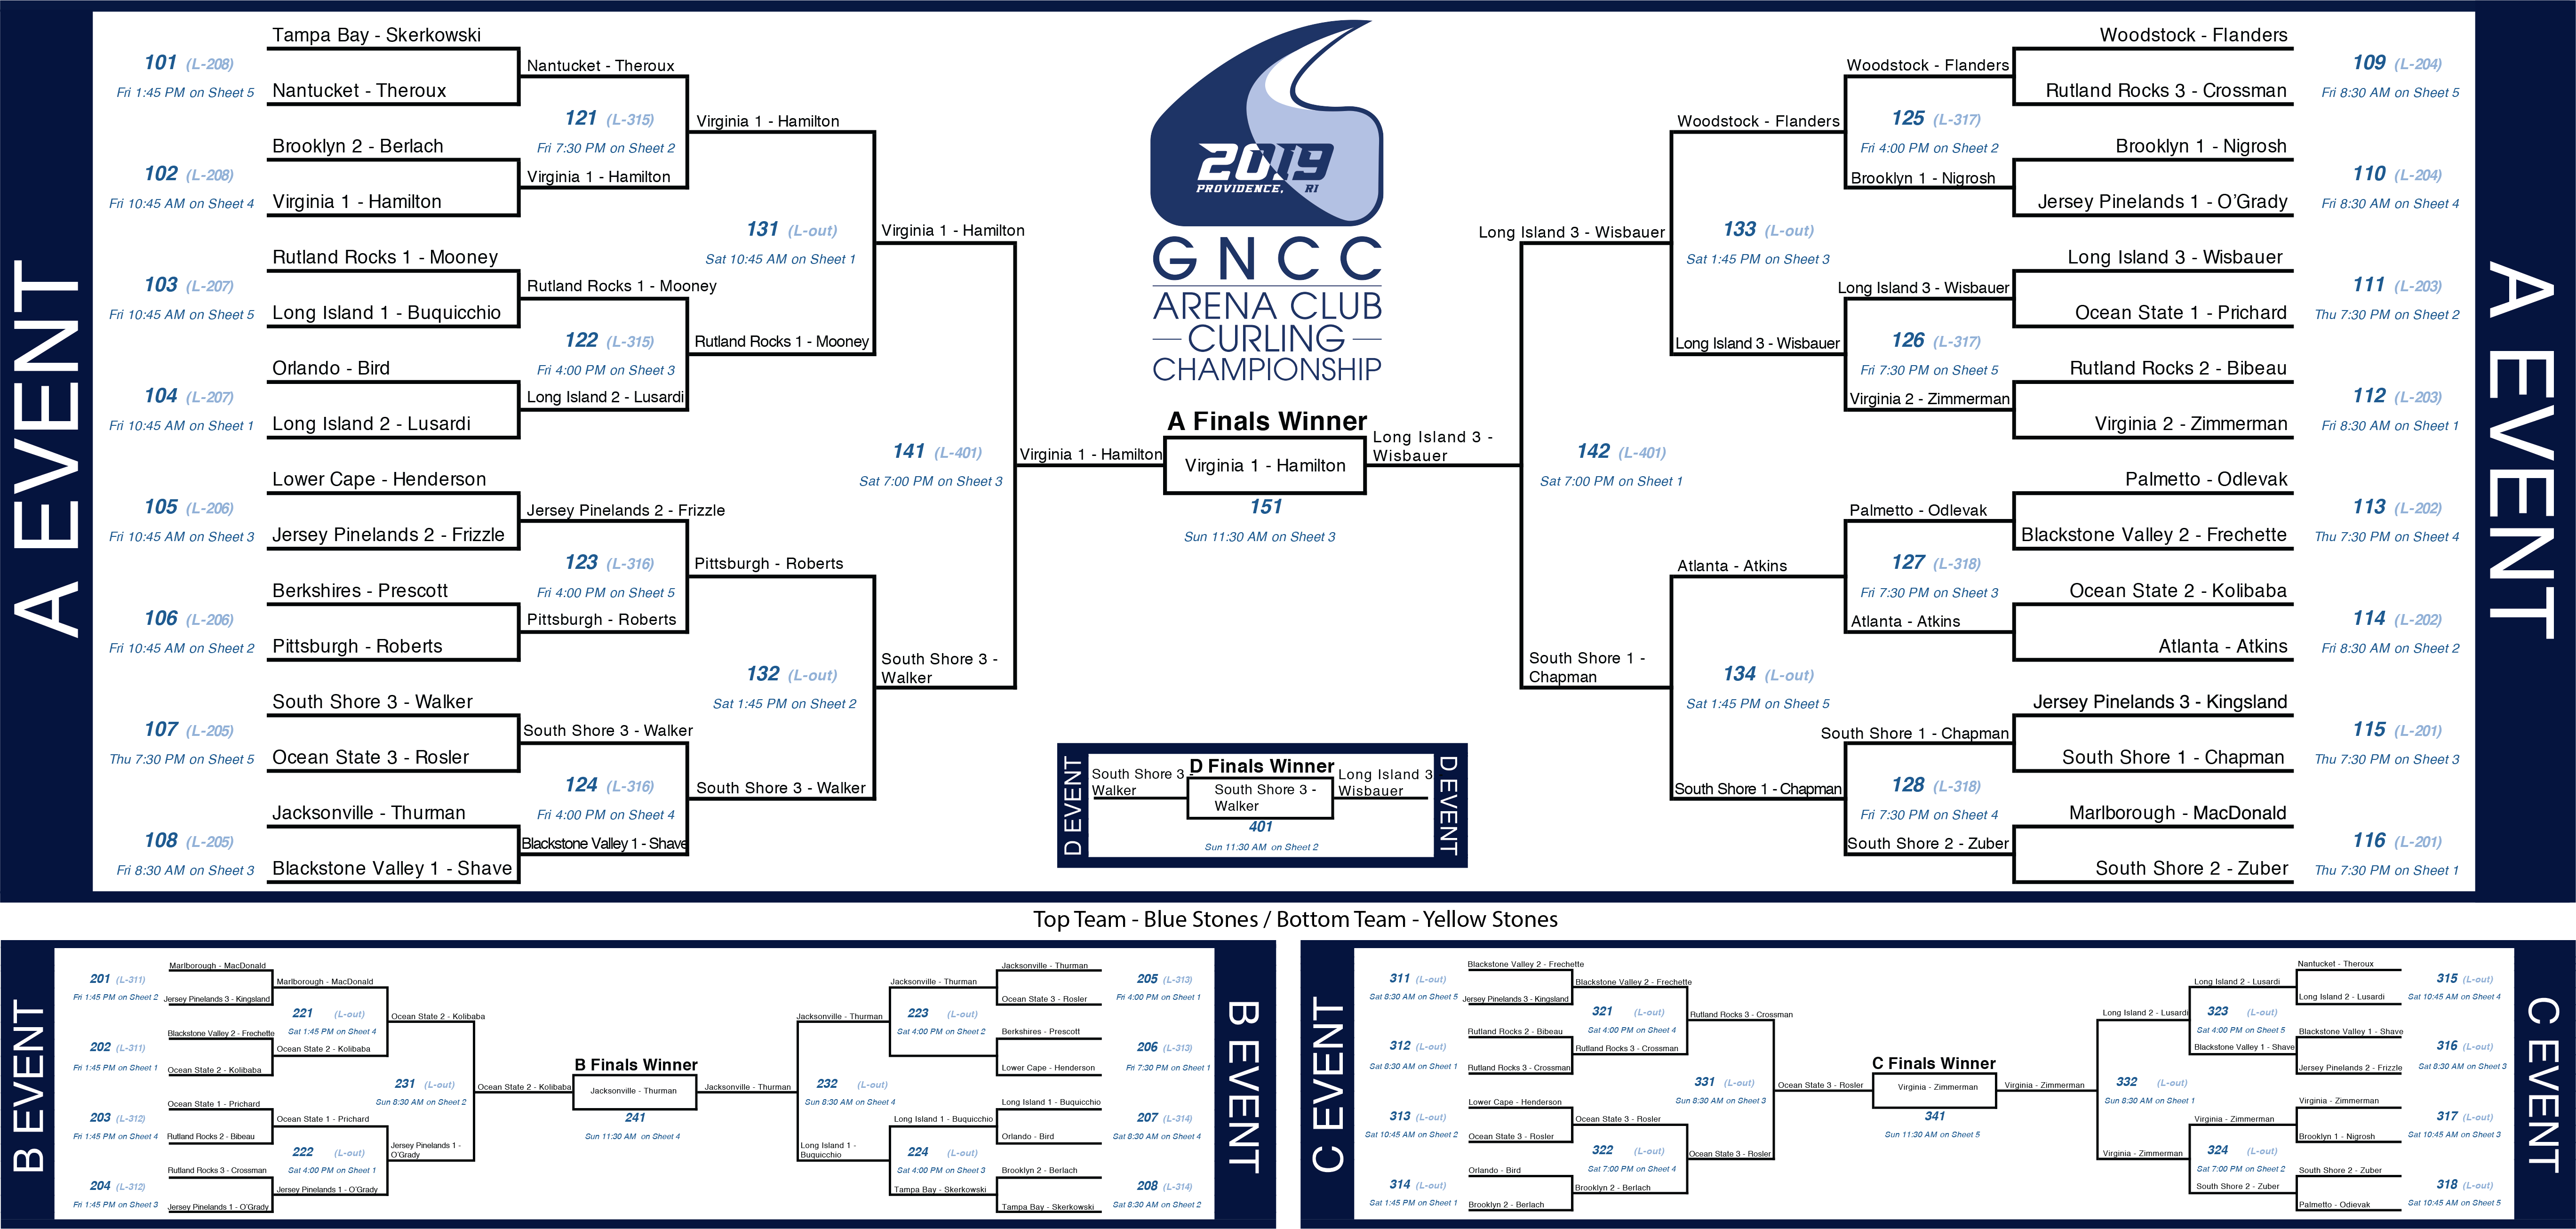 GNCC Arena Championship 2019 Draw Complete3